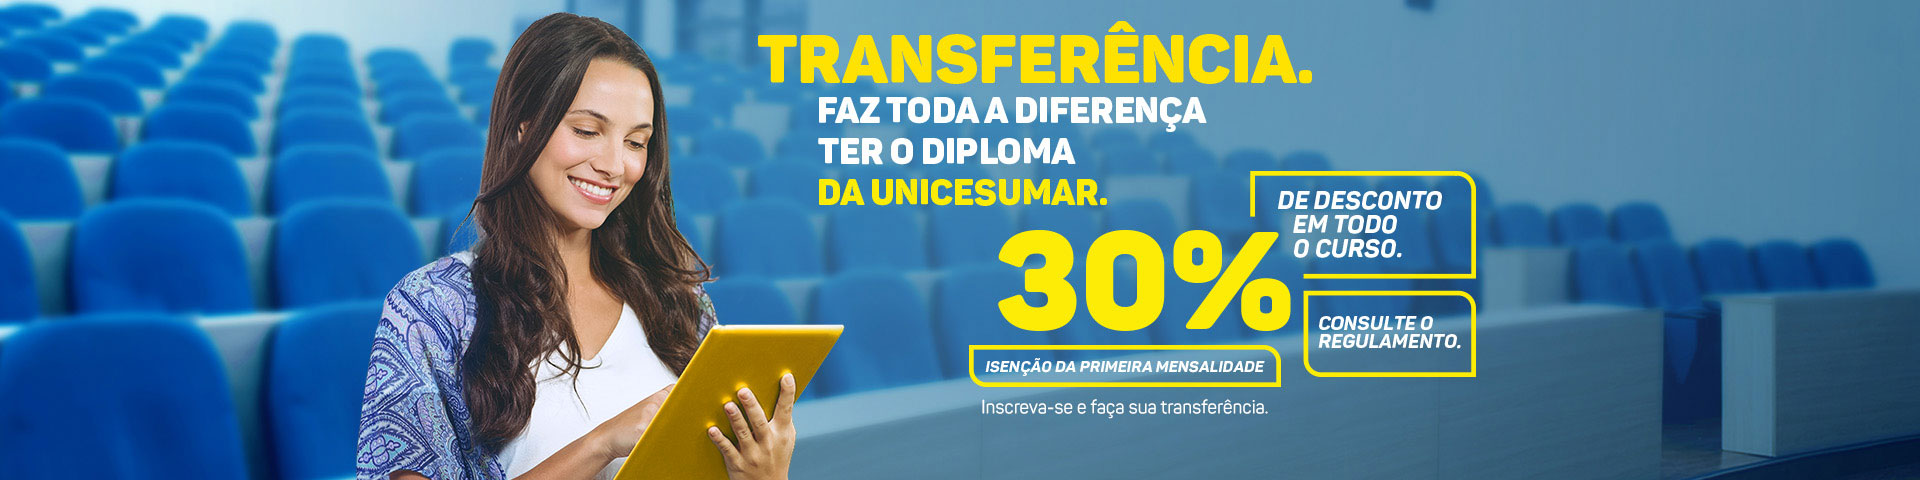 Banner-transferencia-2019-home-1920x480px-30p-Maringa